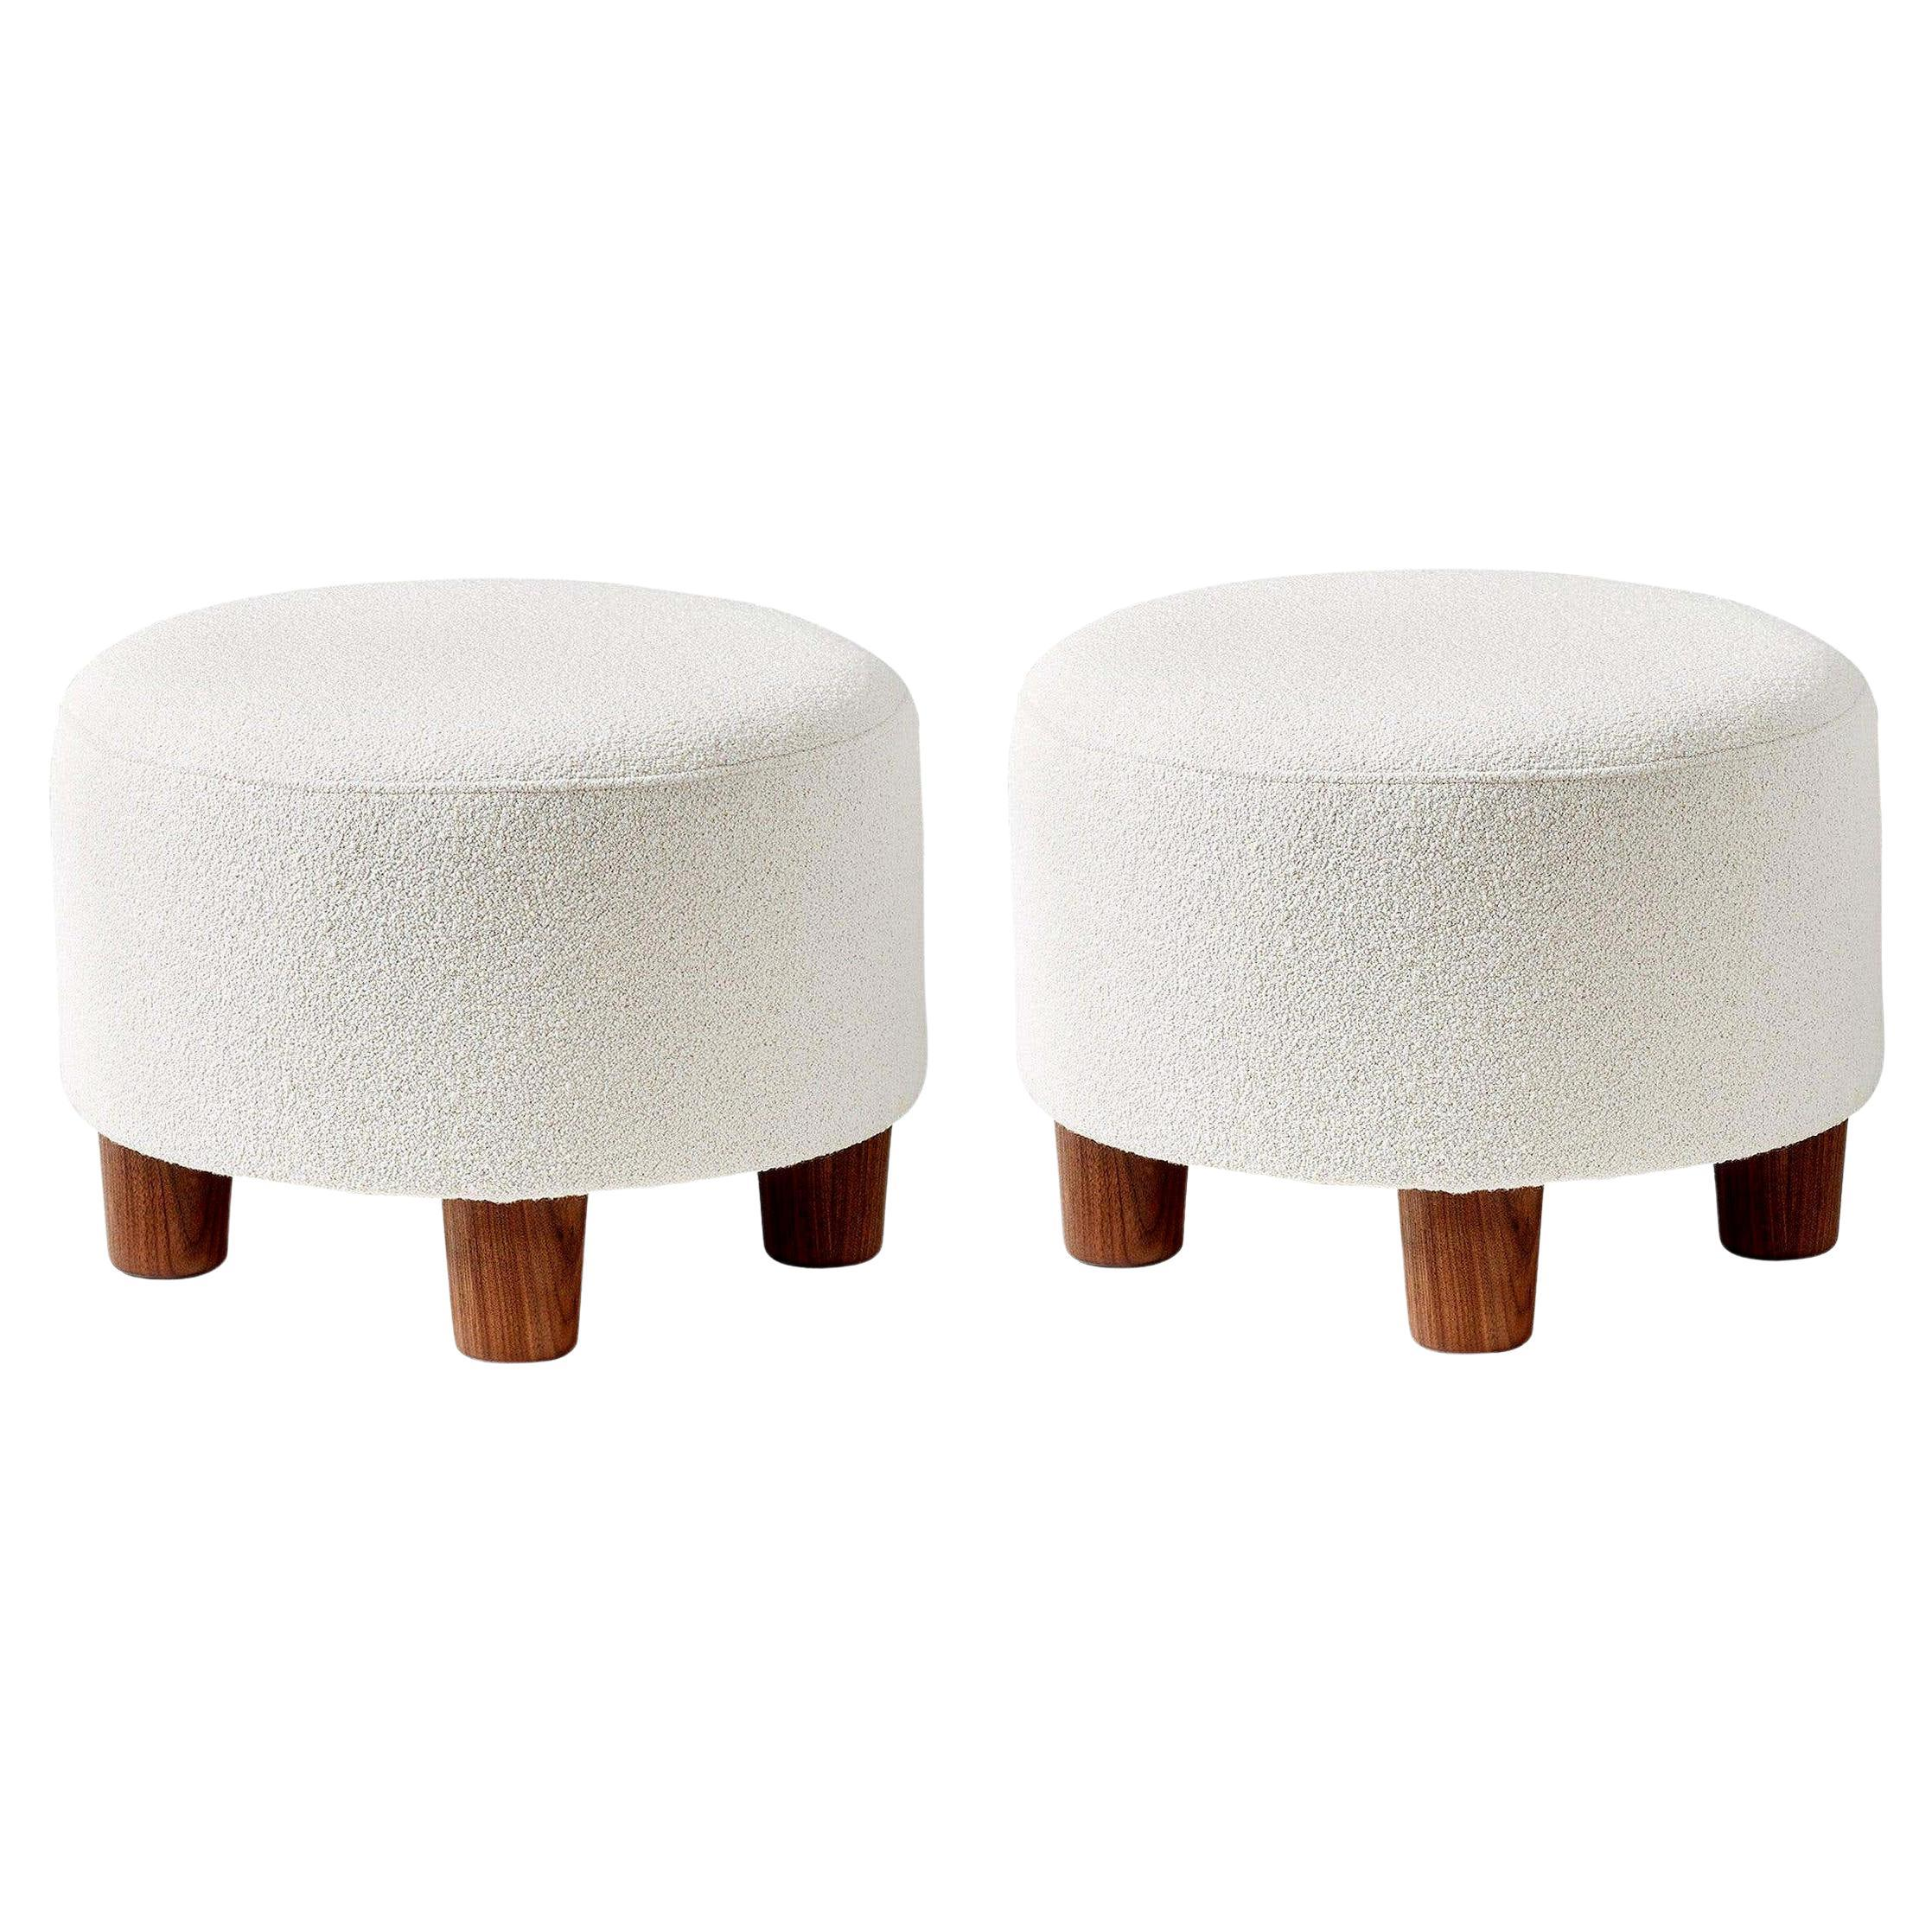 Pair of Custom Made Round Boucle Ottomans with Walnut Legs